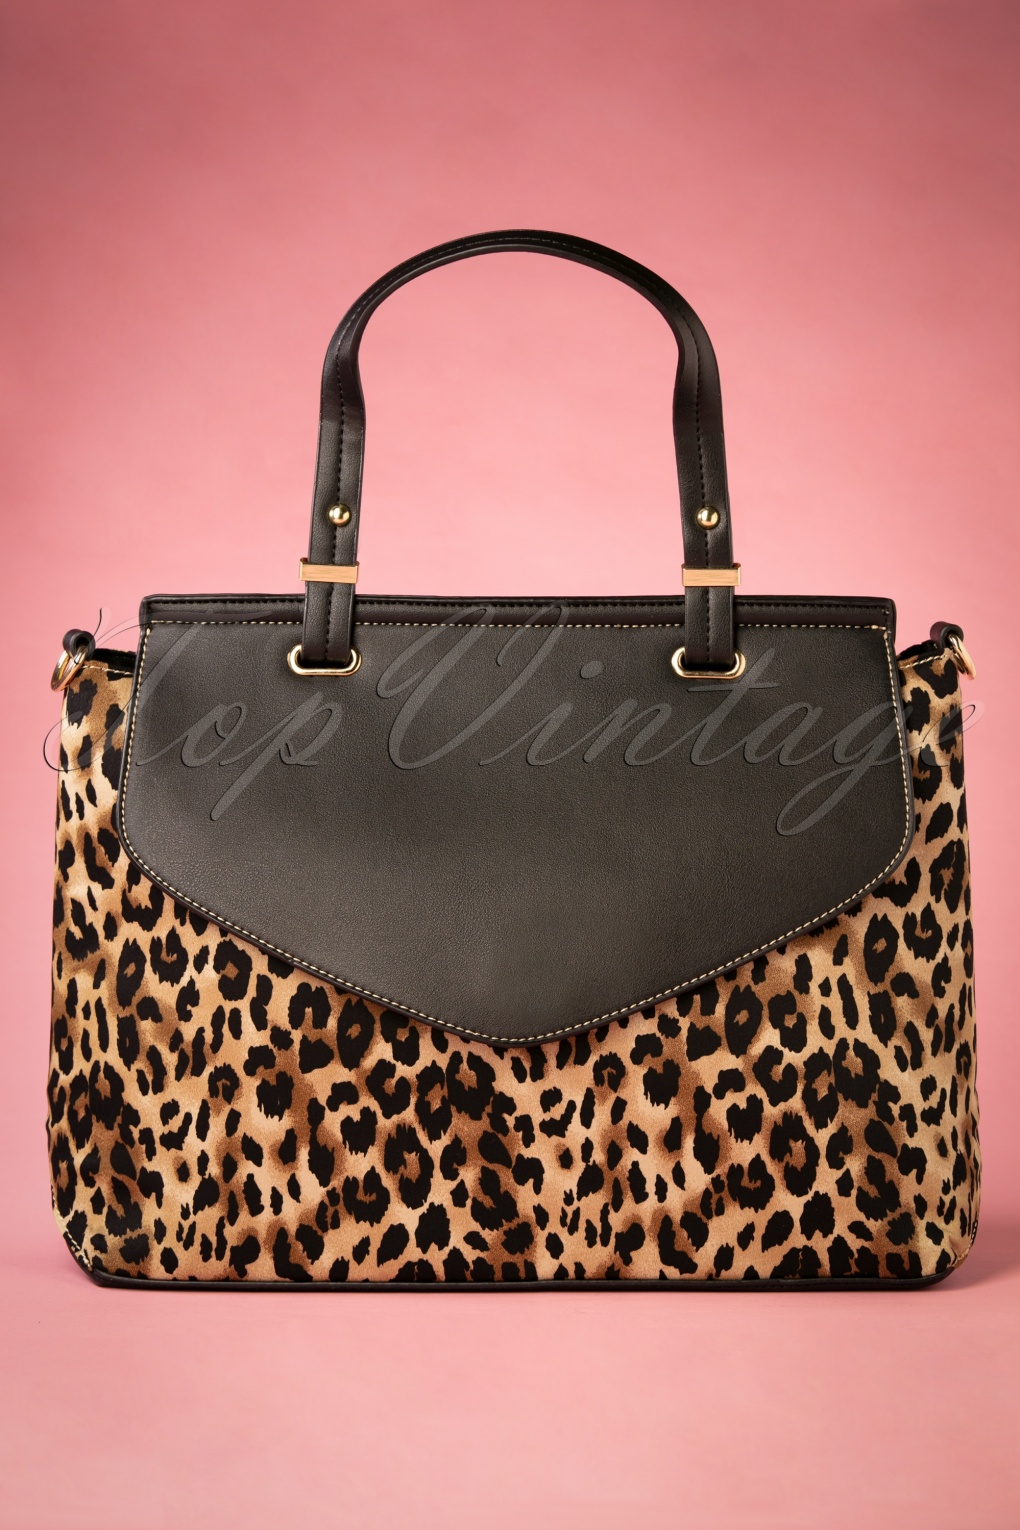 1950s Handbags, Purses, and Evening Bag Styles 50s Liz Leopard Handbag in Black £31.60 AT vintagedancer.com